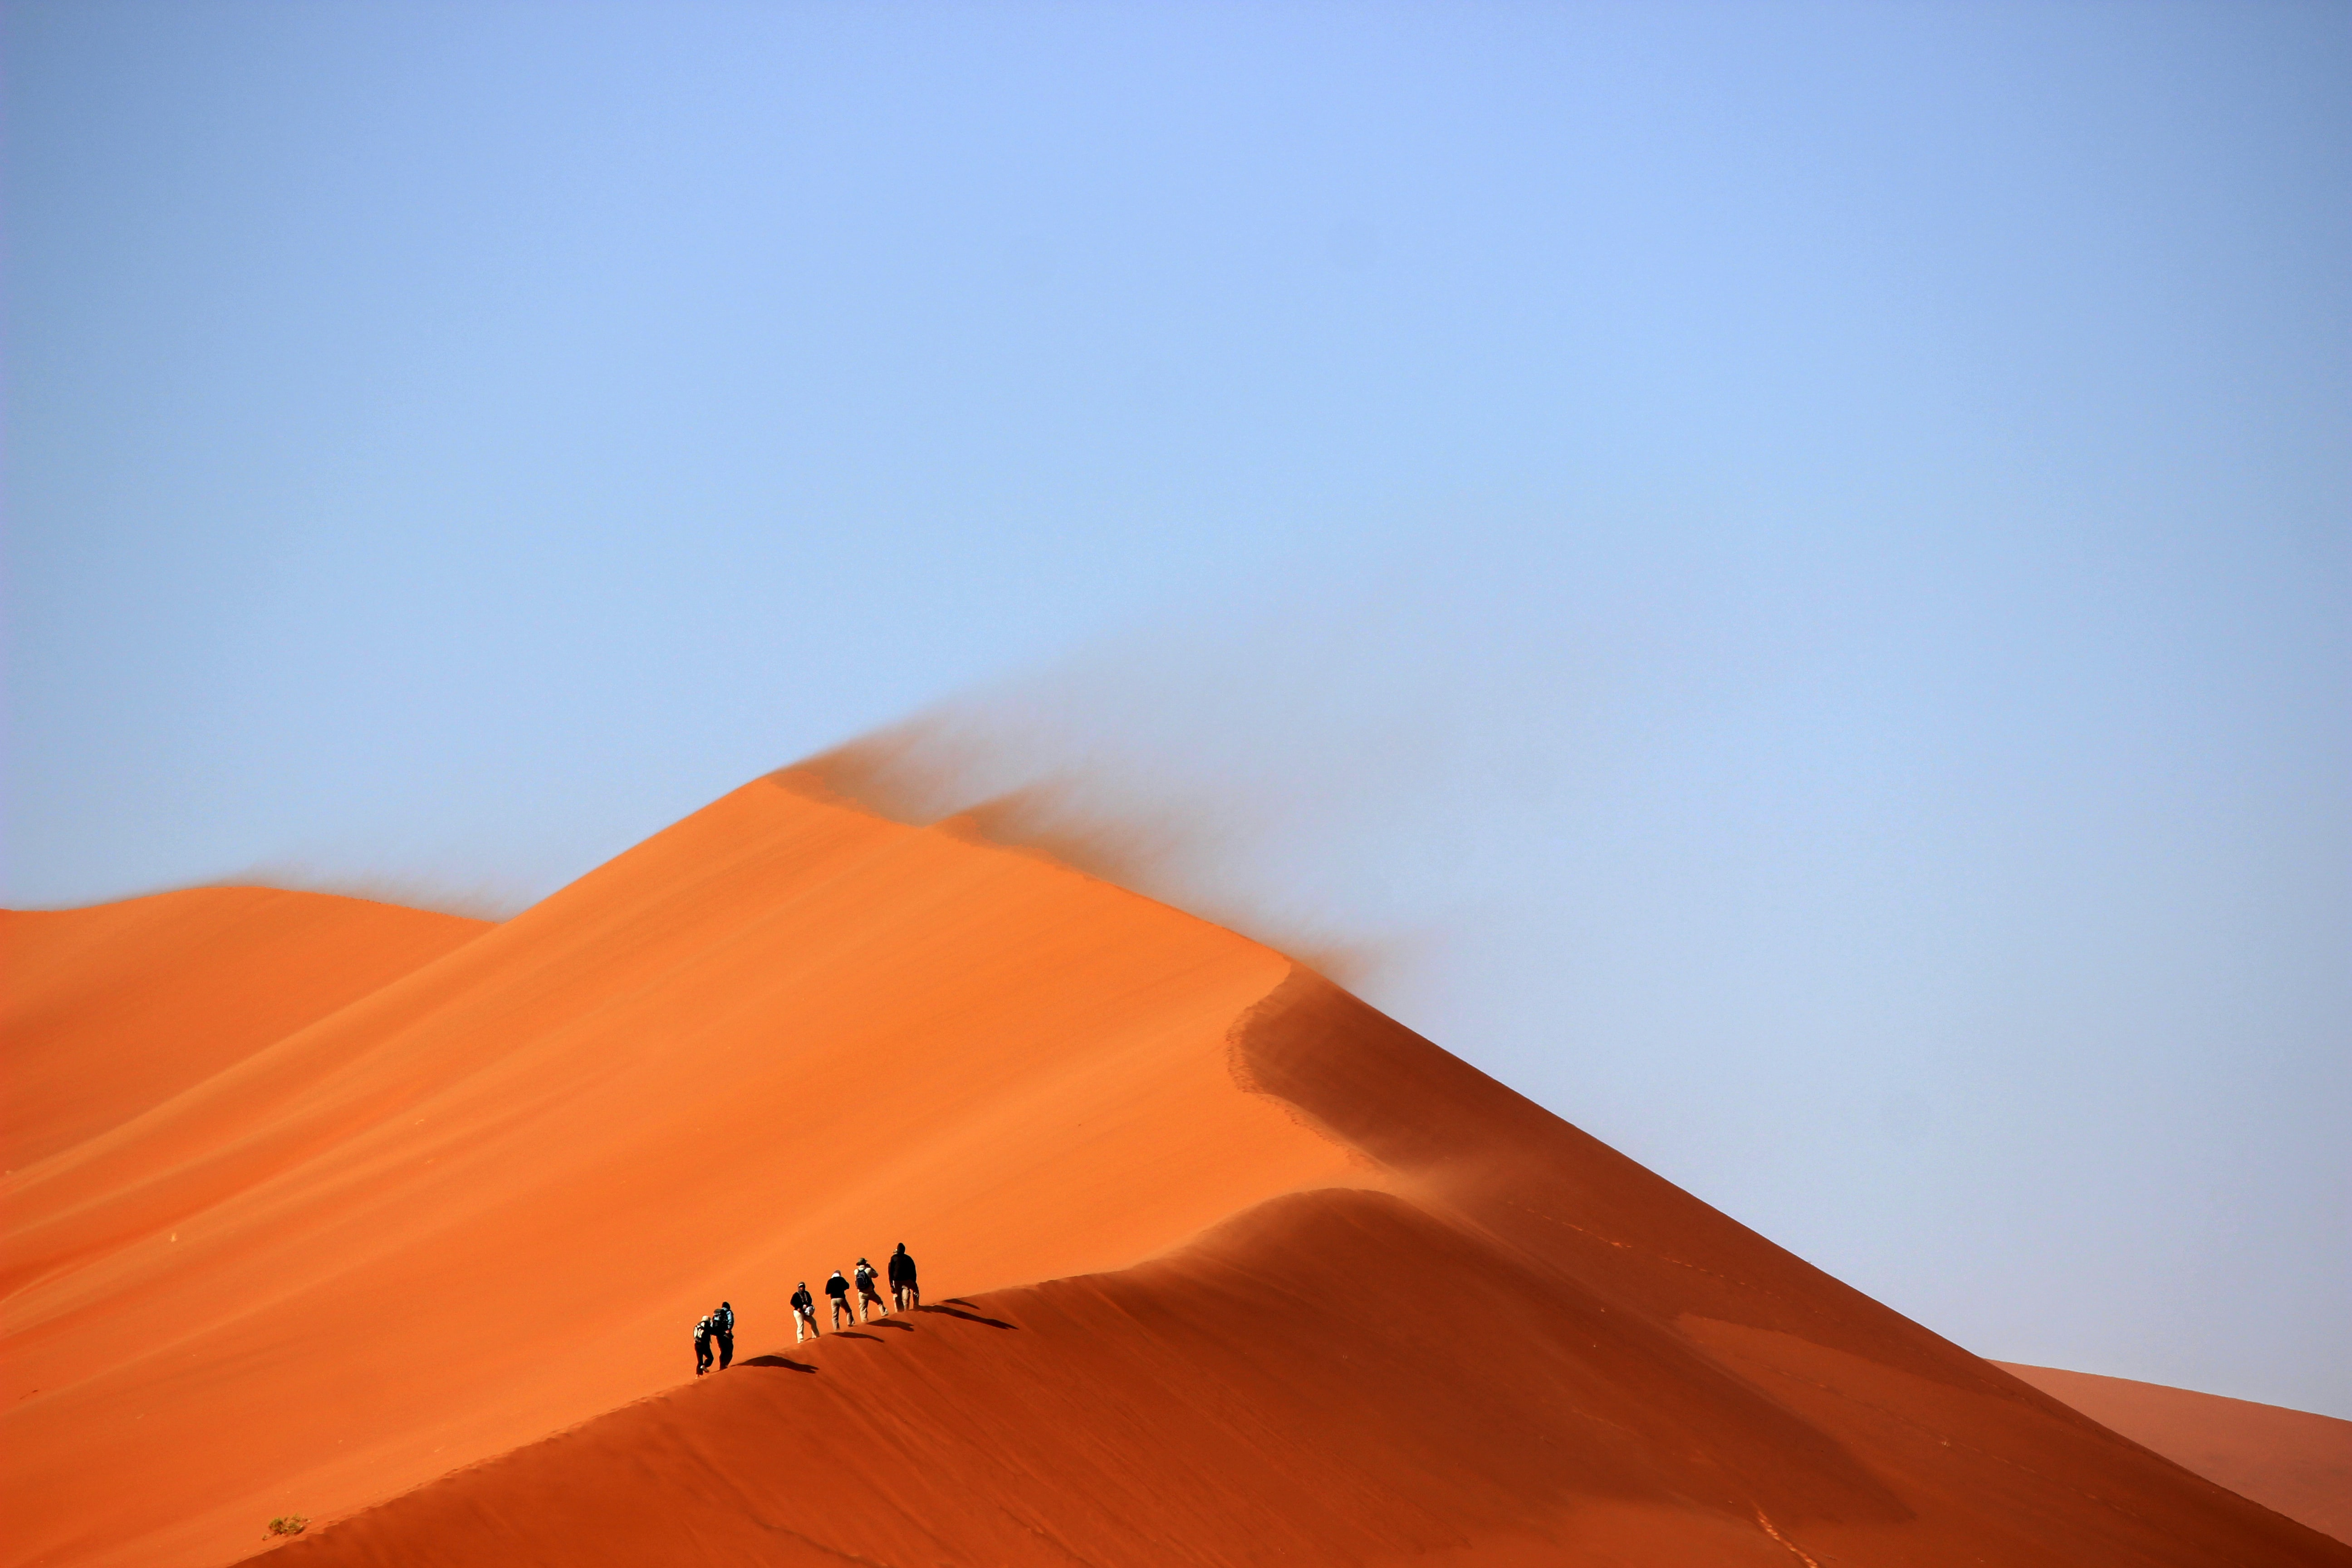 Hikers walk along orange sand ridges on a windy foggy day